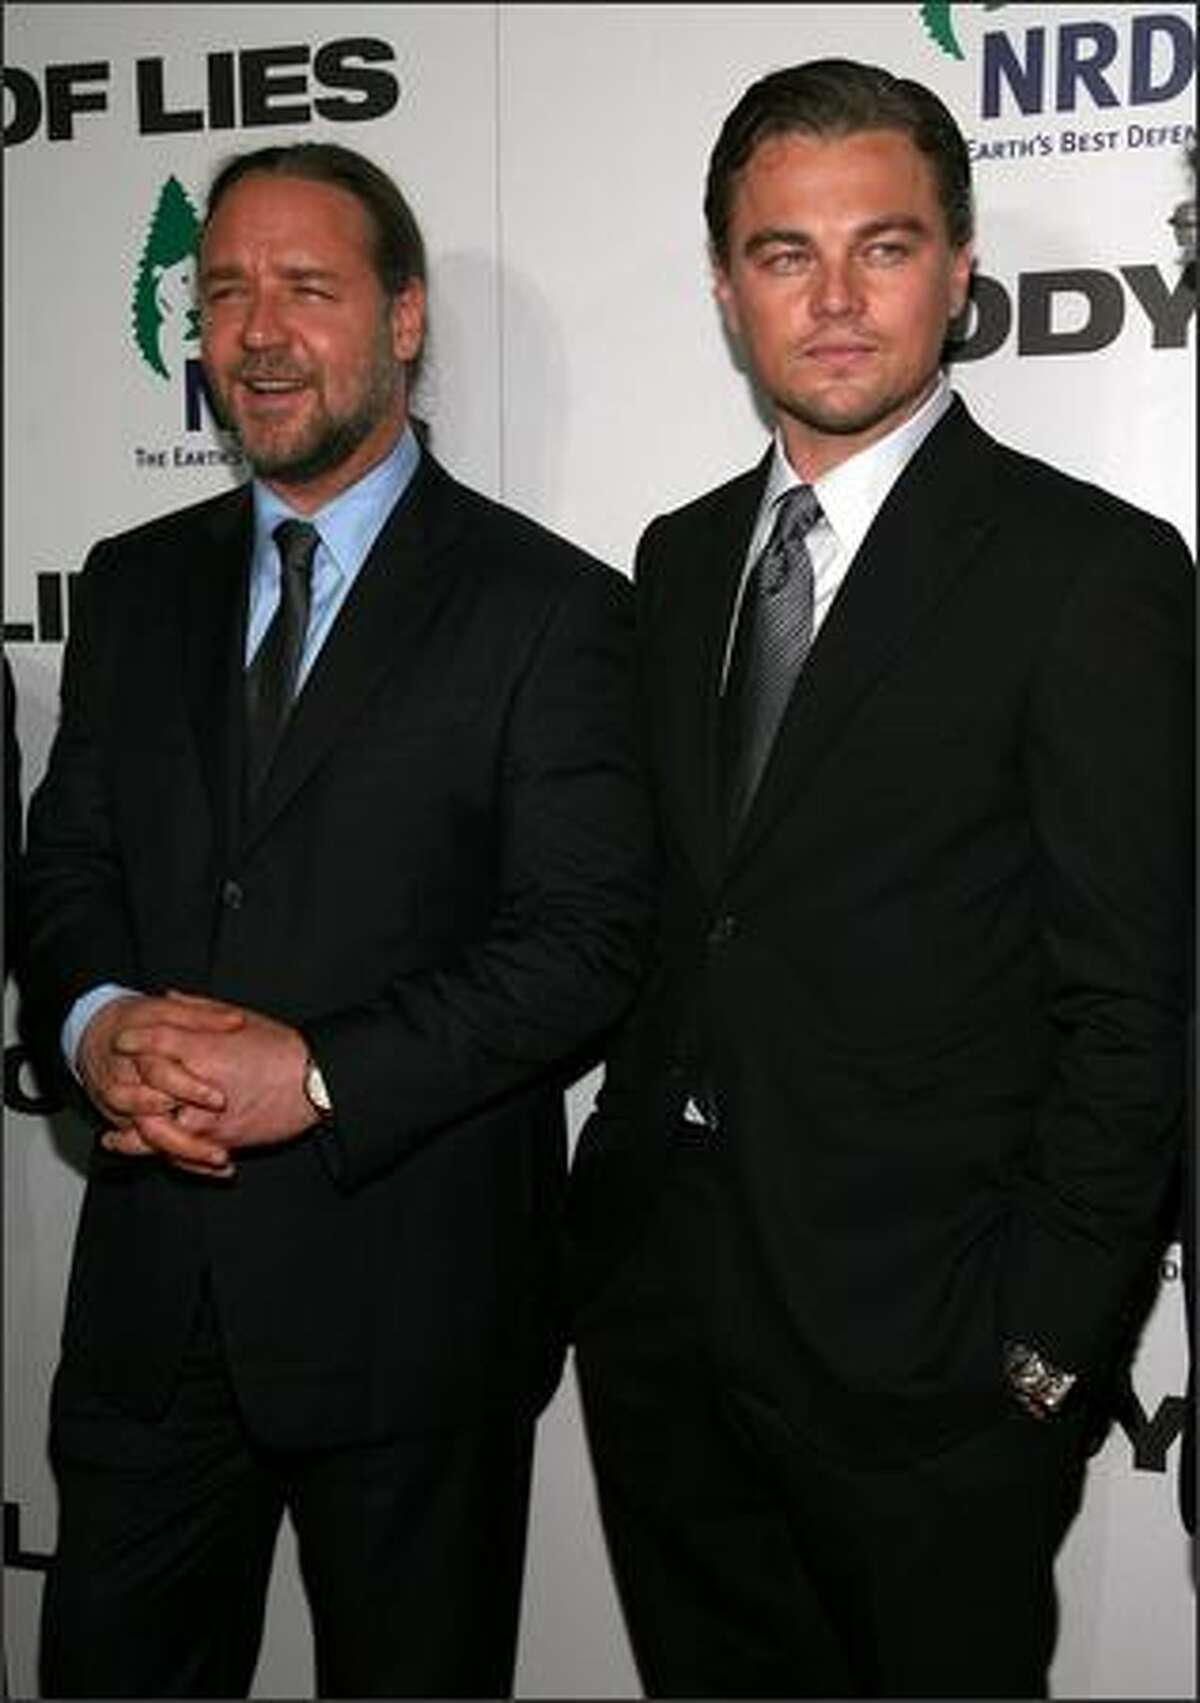 Actors Russell Crowe and Leonardo DiCaprio attend the premiere of